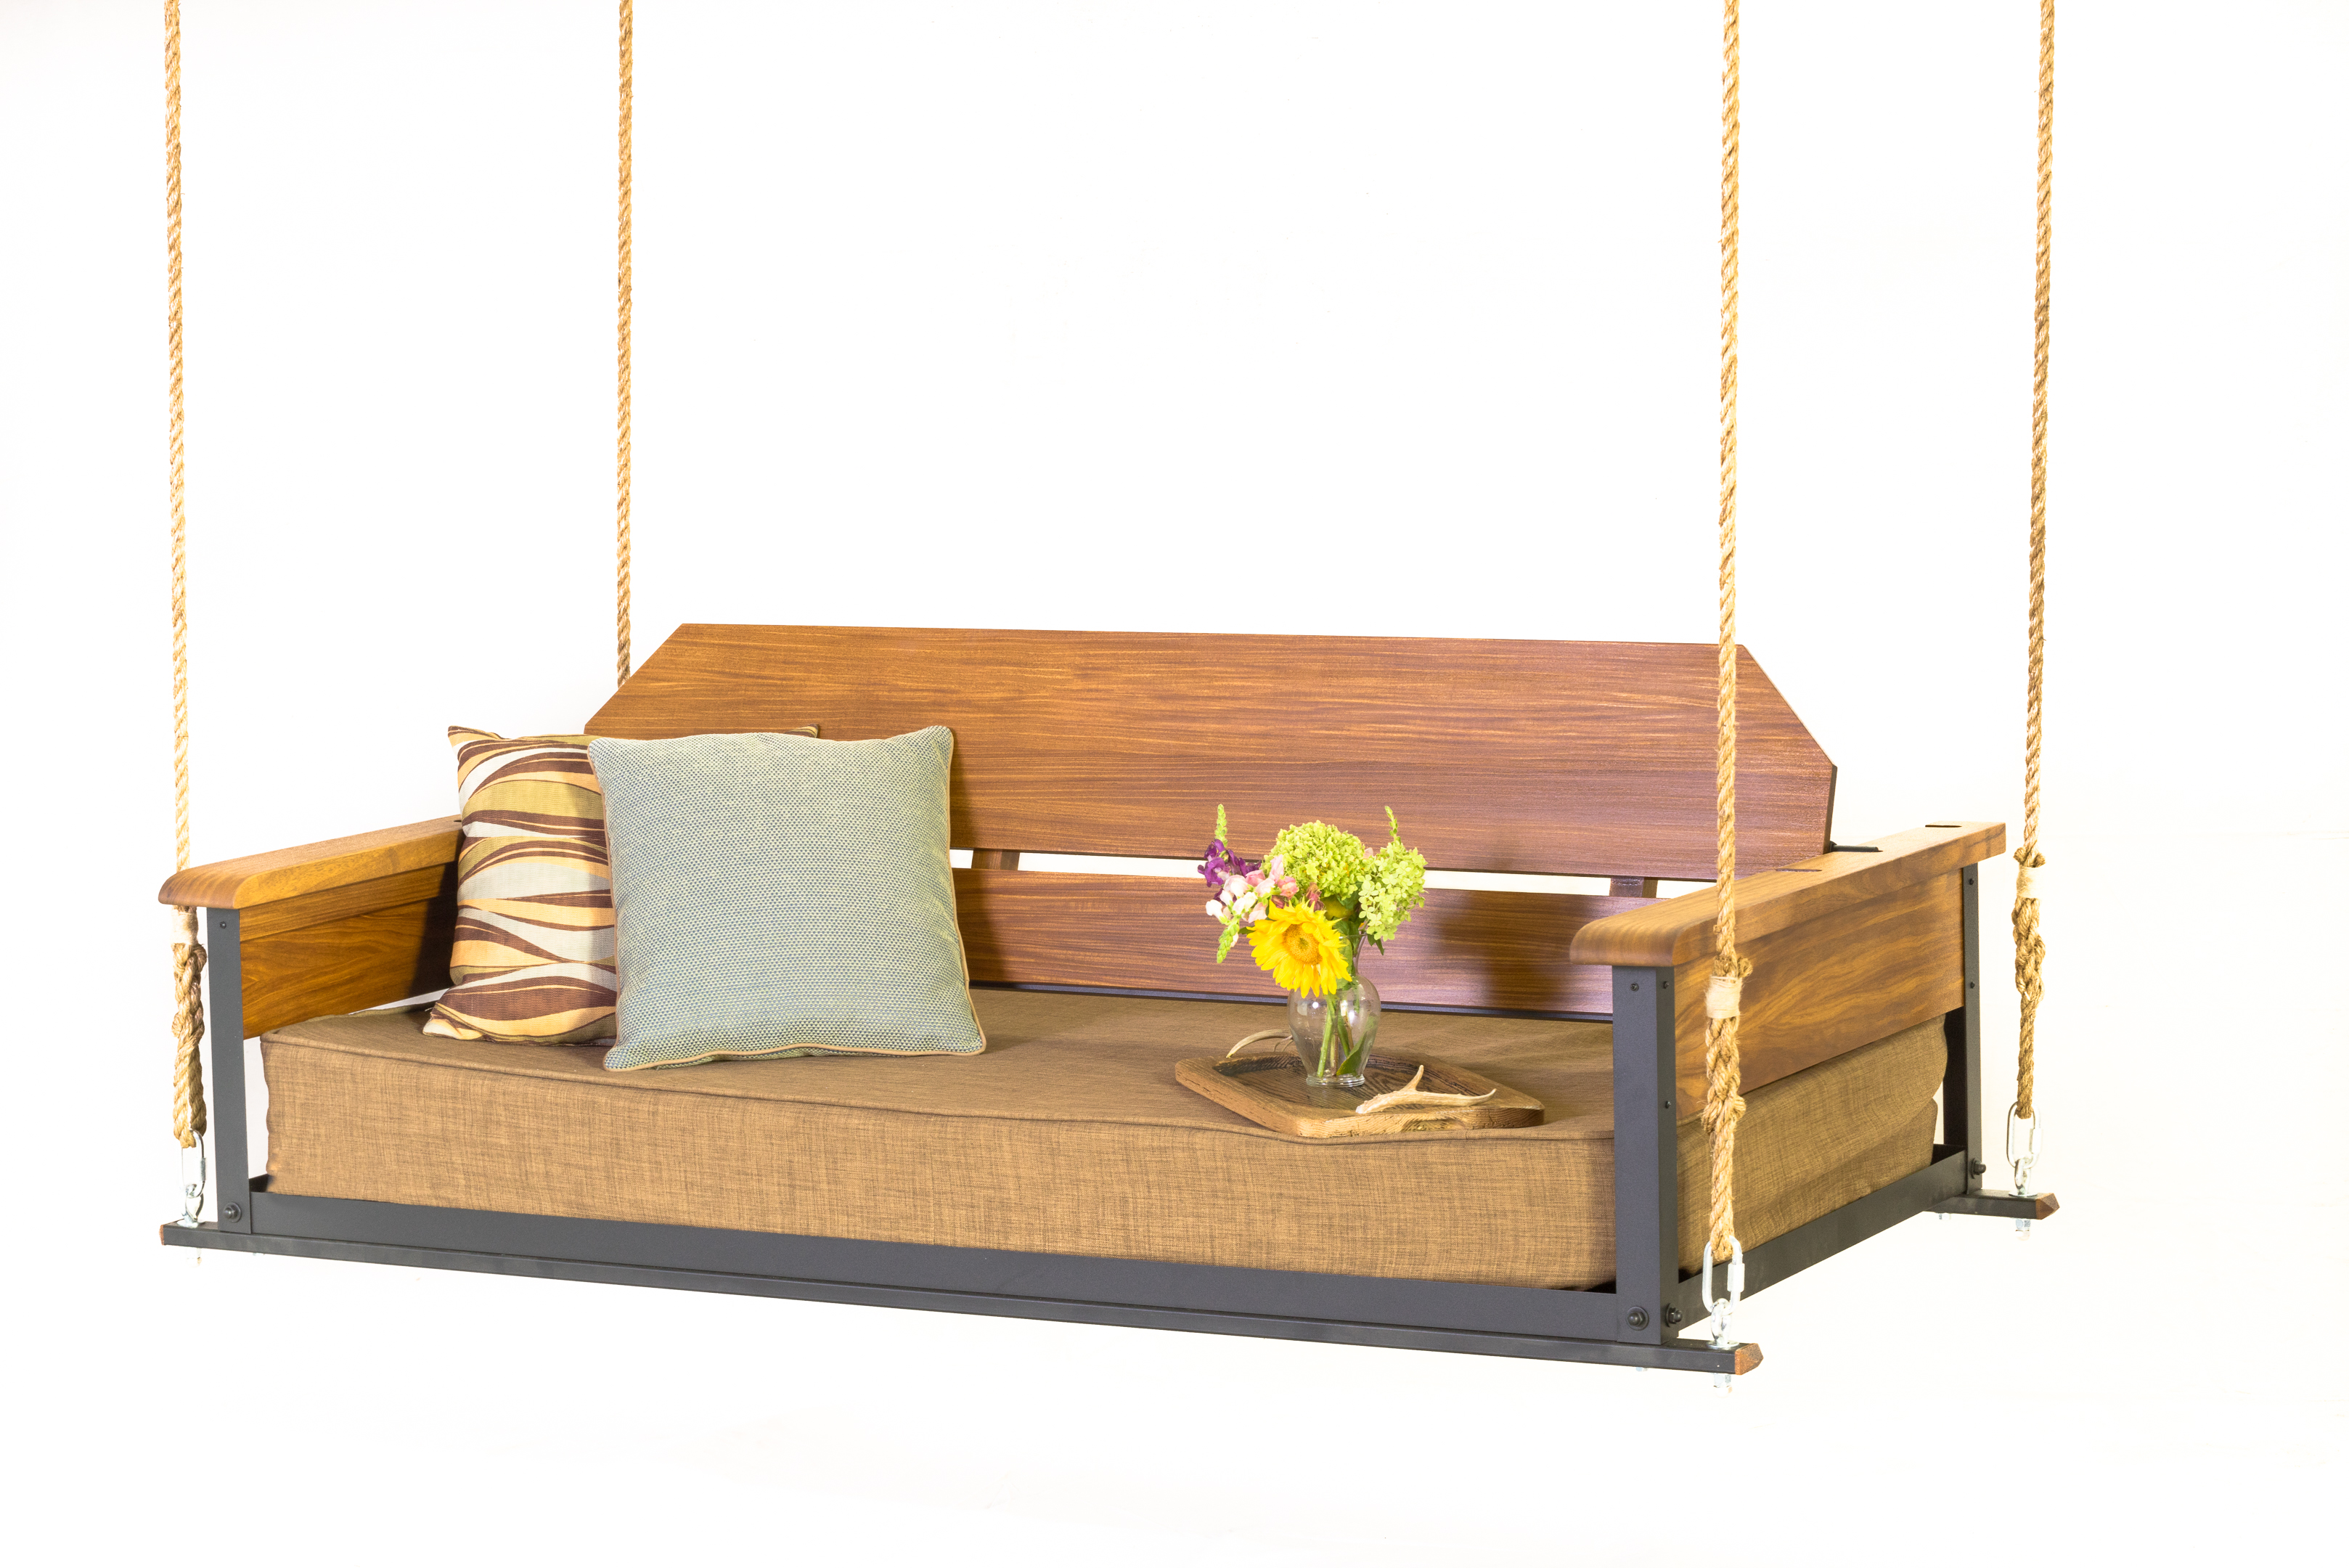 The Cottage Teak Bed Swing